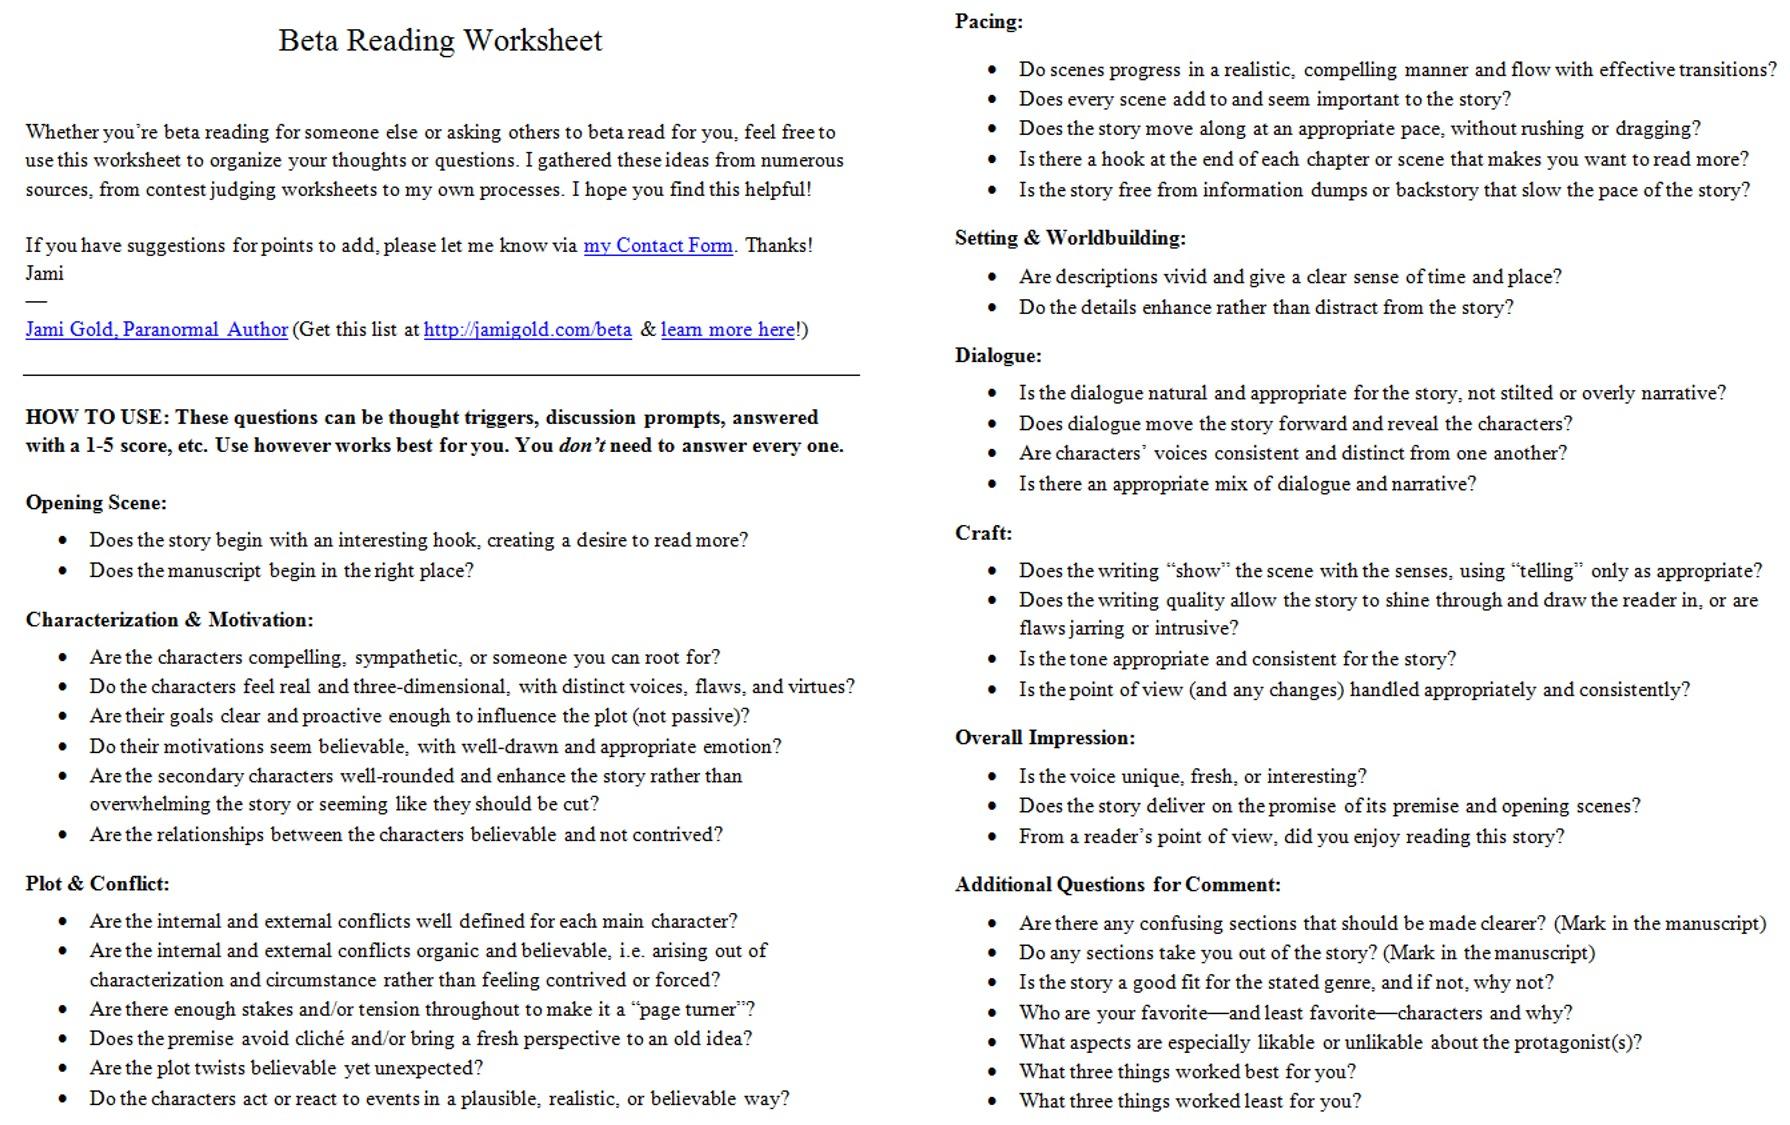 Aldiablosus  Pleasant Worksheets For Writers  Jami Gold Paranormal Author With Heavenly Screen Shot Of The Twopage Beta Reading Worksheet With Adorable Multiple Meaning Words Worksheets Th Grade Also  Grade Reading Worksheets In Addition Th Grade Addition And Subtraction Worksheets And Primary Secondary Sources Worksheet As Well As Algebra Worksheet With Answers Additionally Academic Worksheets From Jamigoldcom With Aldiablosus  Heavenly Worksheets For Writers  Jami Gold Paranormal Author With Adorable Screen Shot Of The Twopage Beta Reading Worksheet And Pleasant Multiple Meaning Words Worksheets Th Grade Also  Grade Reading Worksheets In Addition Th Grade Addition And Subtraction Worksheets From Jamigoldcom